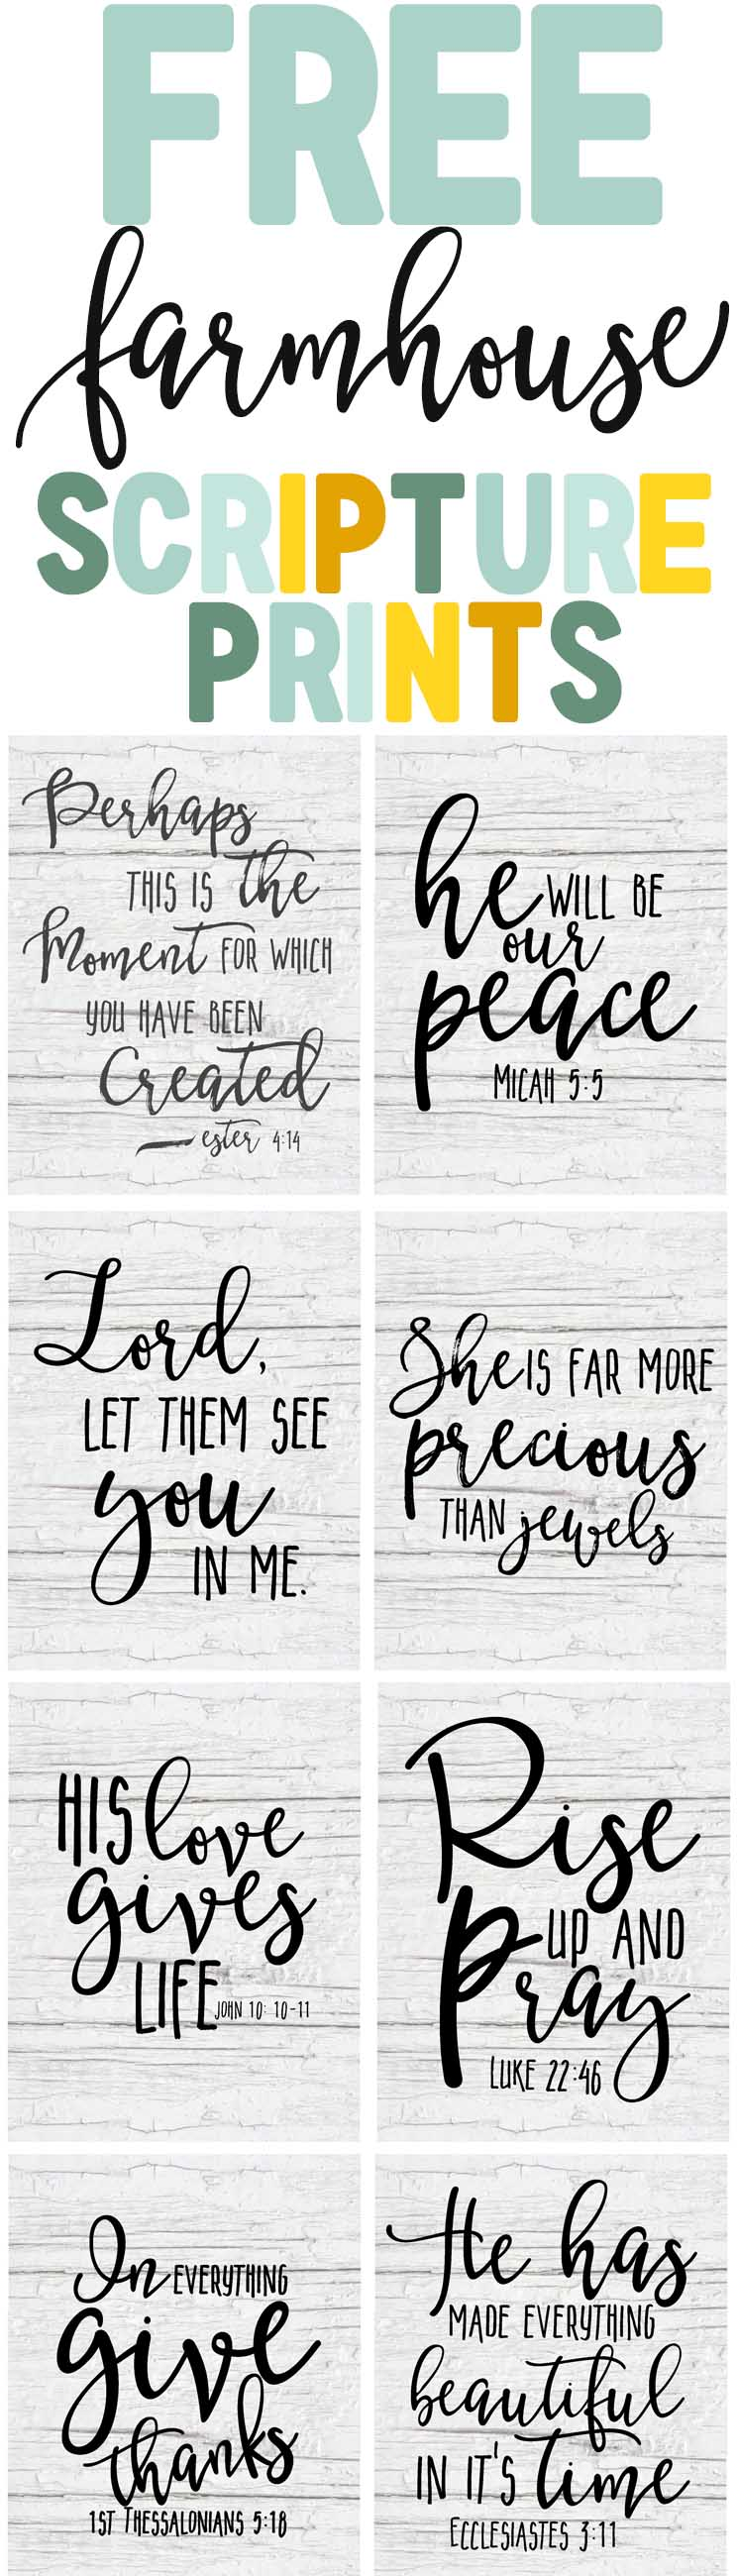 photo relating to Free Printable Bible Verses named Absolutely free Farmhouse Scripture Printables - The Mountain Viewpoint Cottage